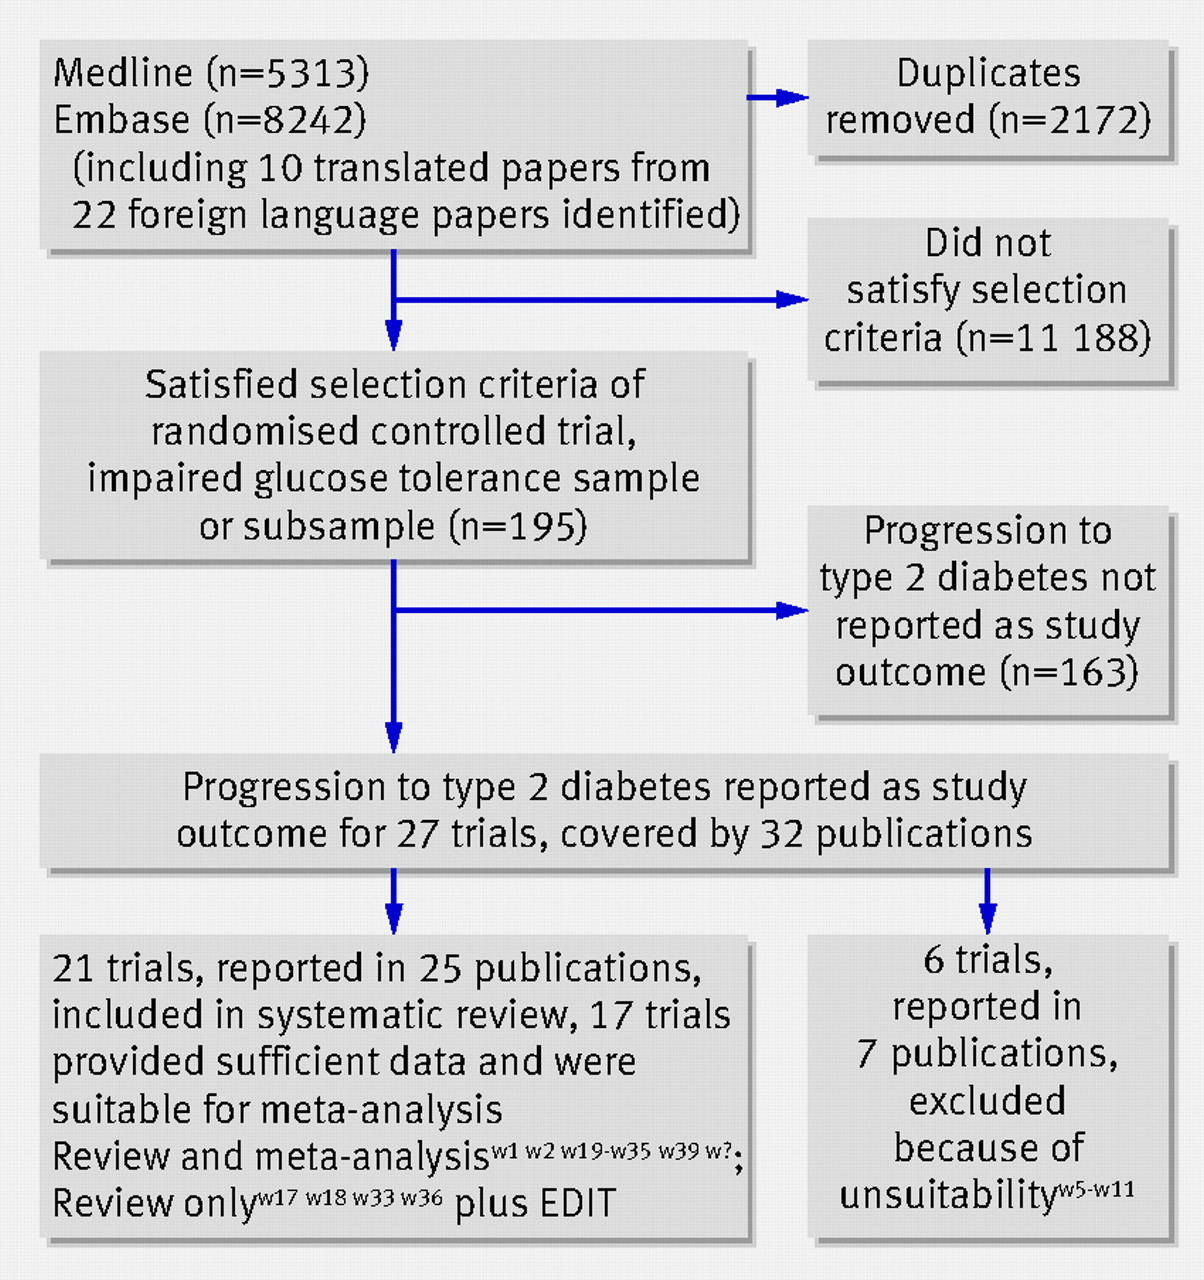 pharmacological and lifestyle interventions to prevent or